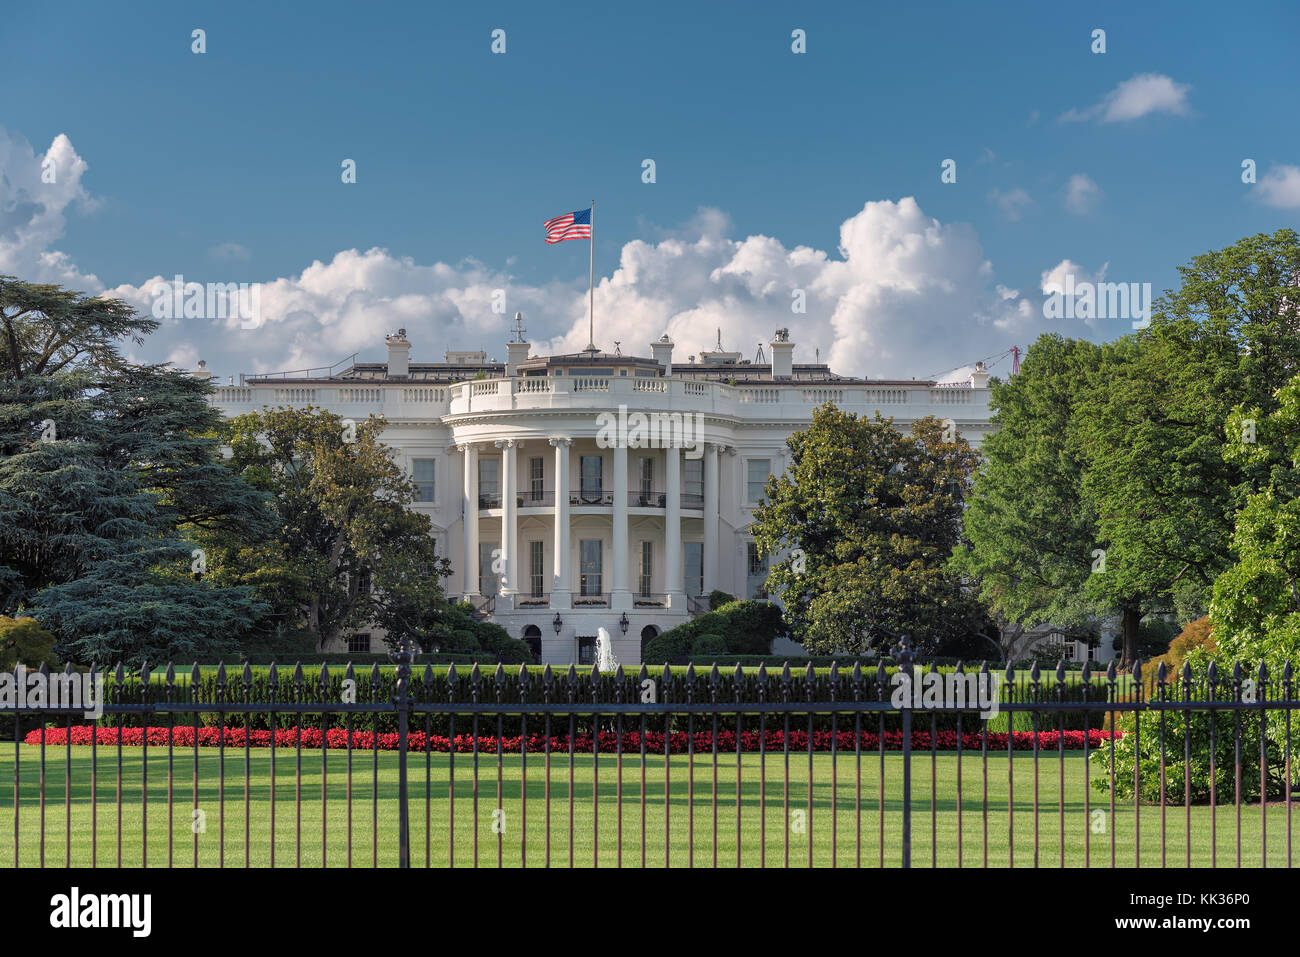 The White House in the United States - Stock Image